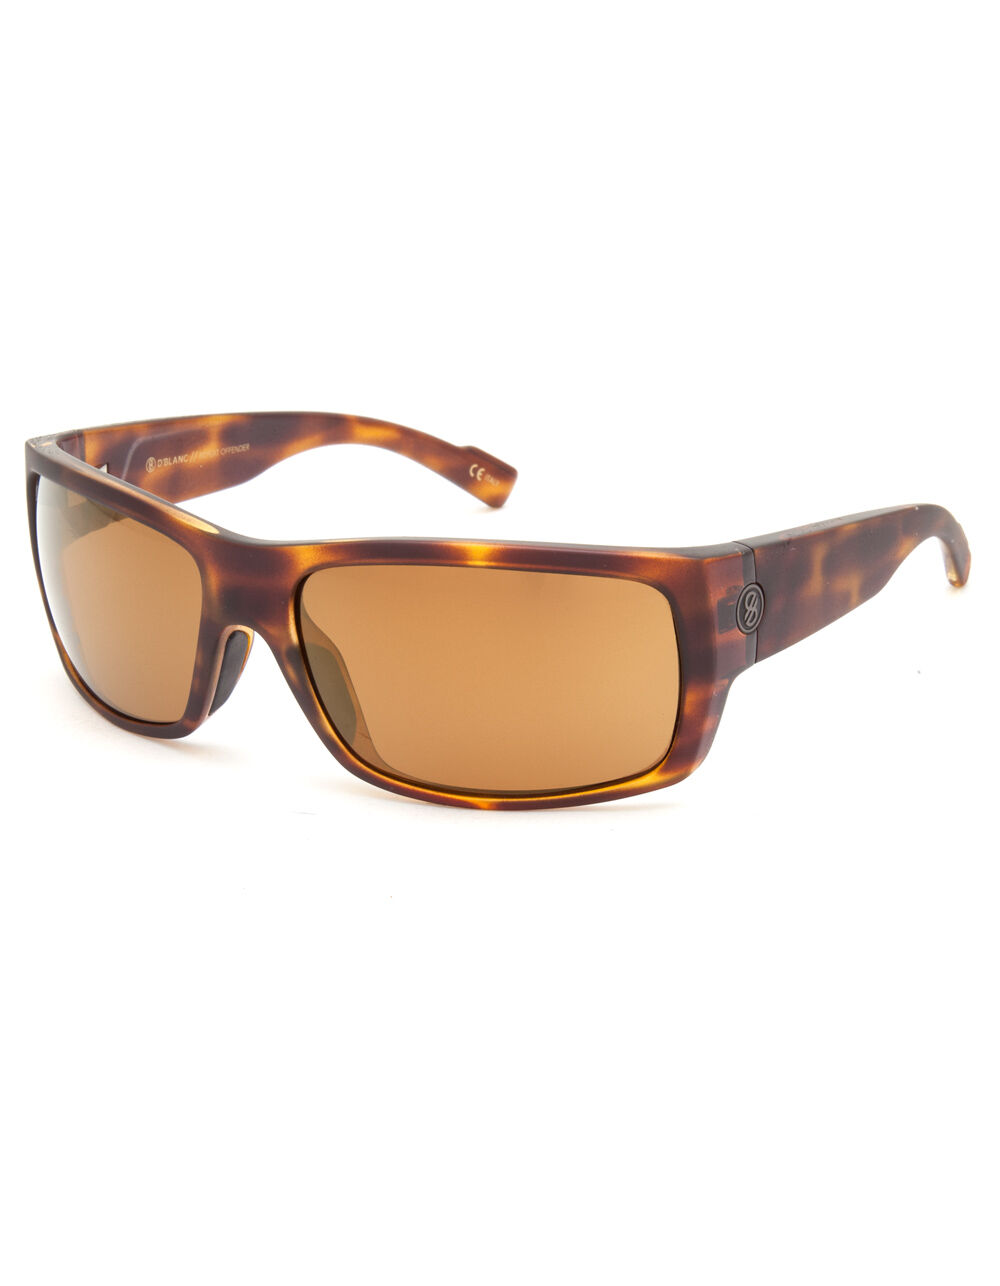 D'BLANC Repeat Offender Polarized Sunglasses